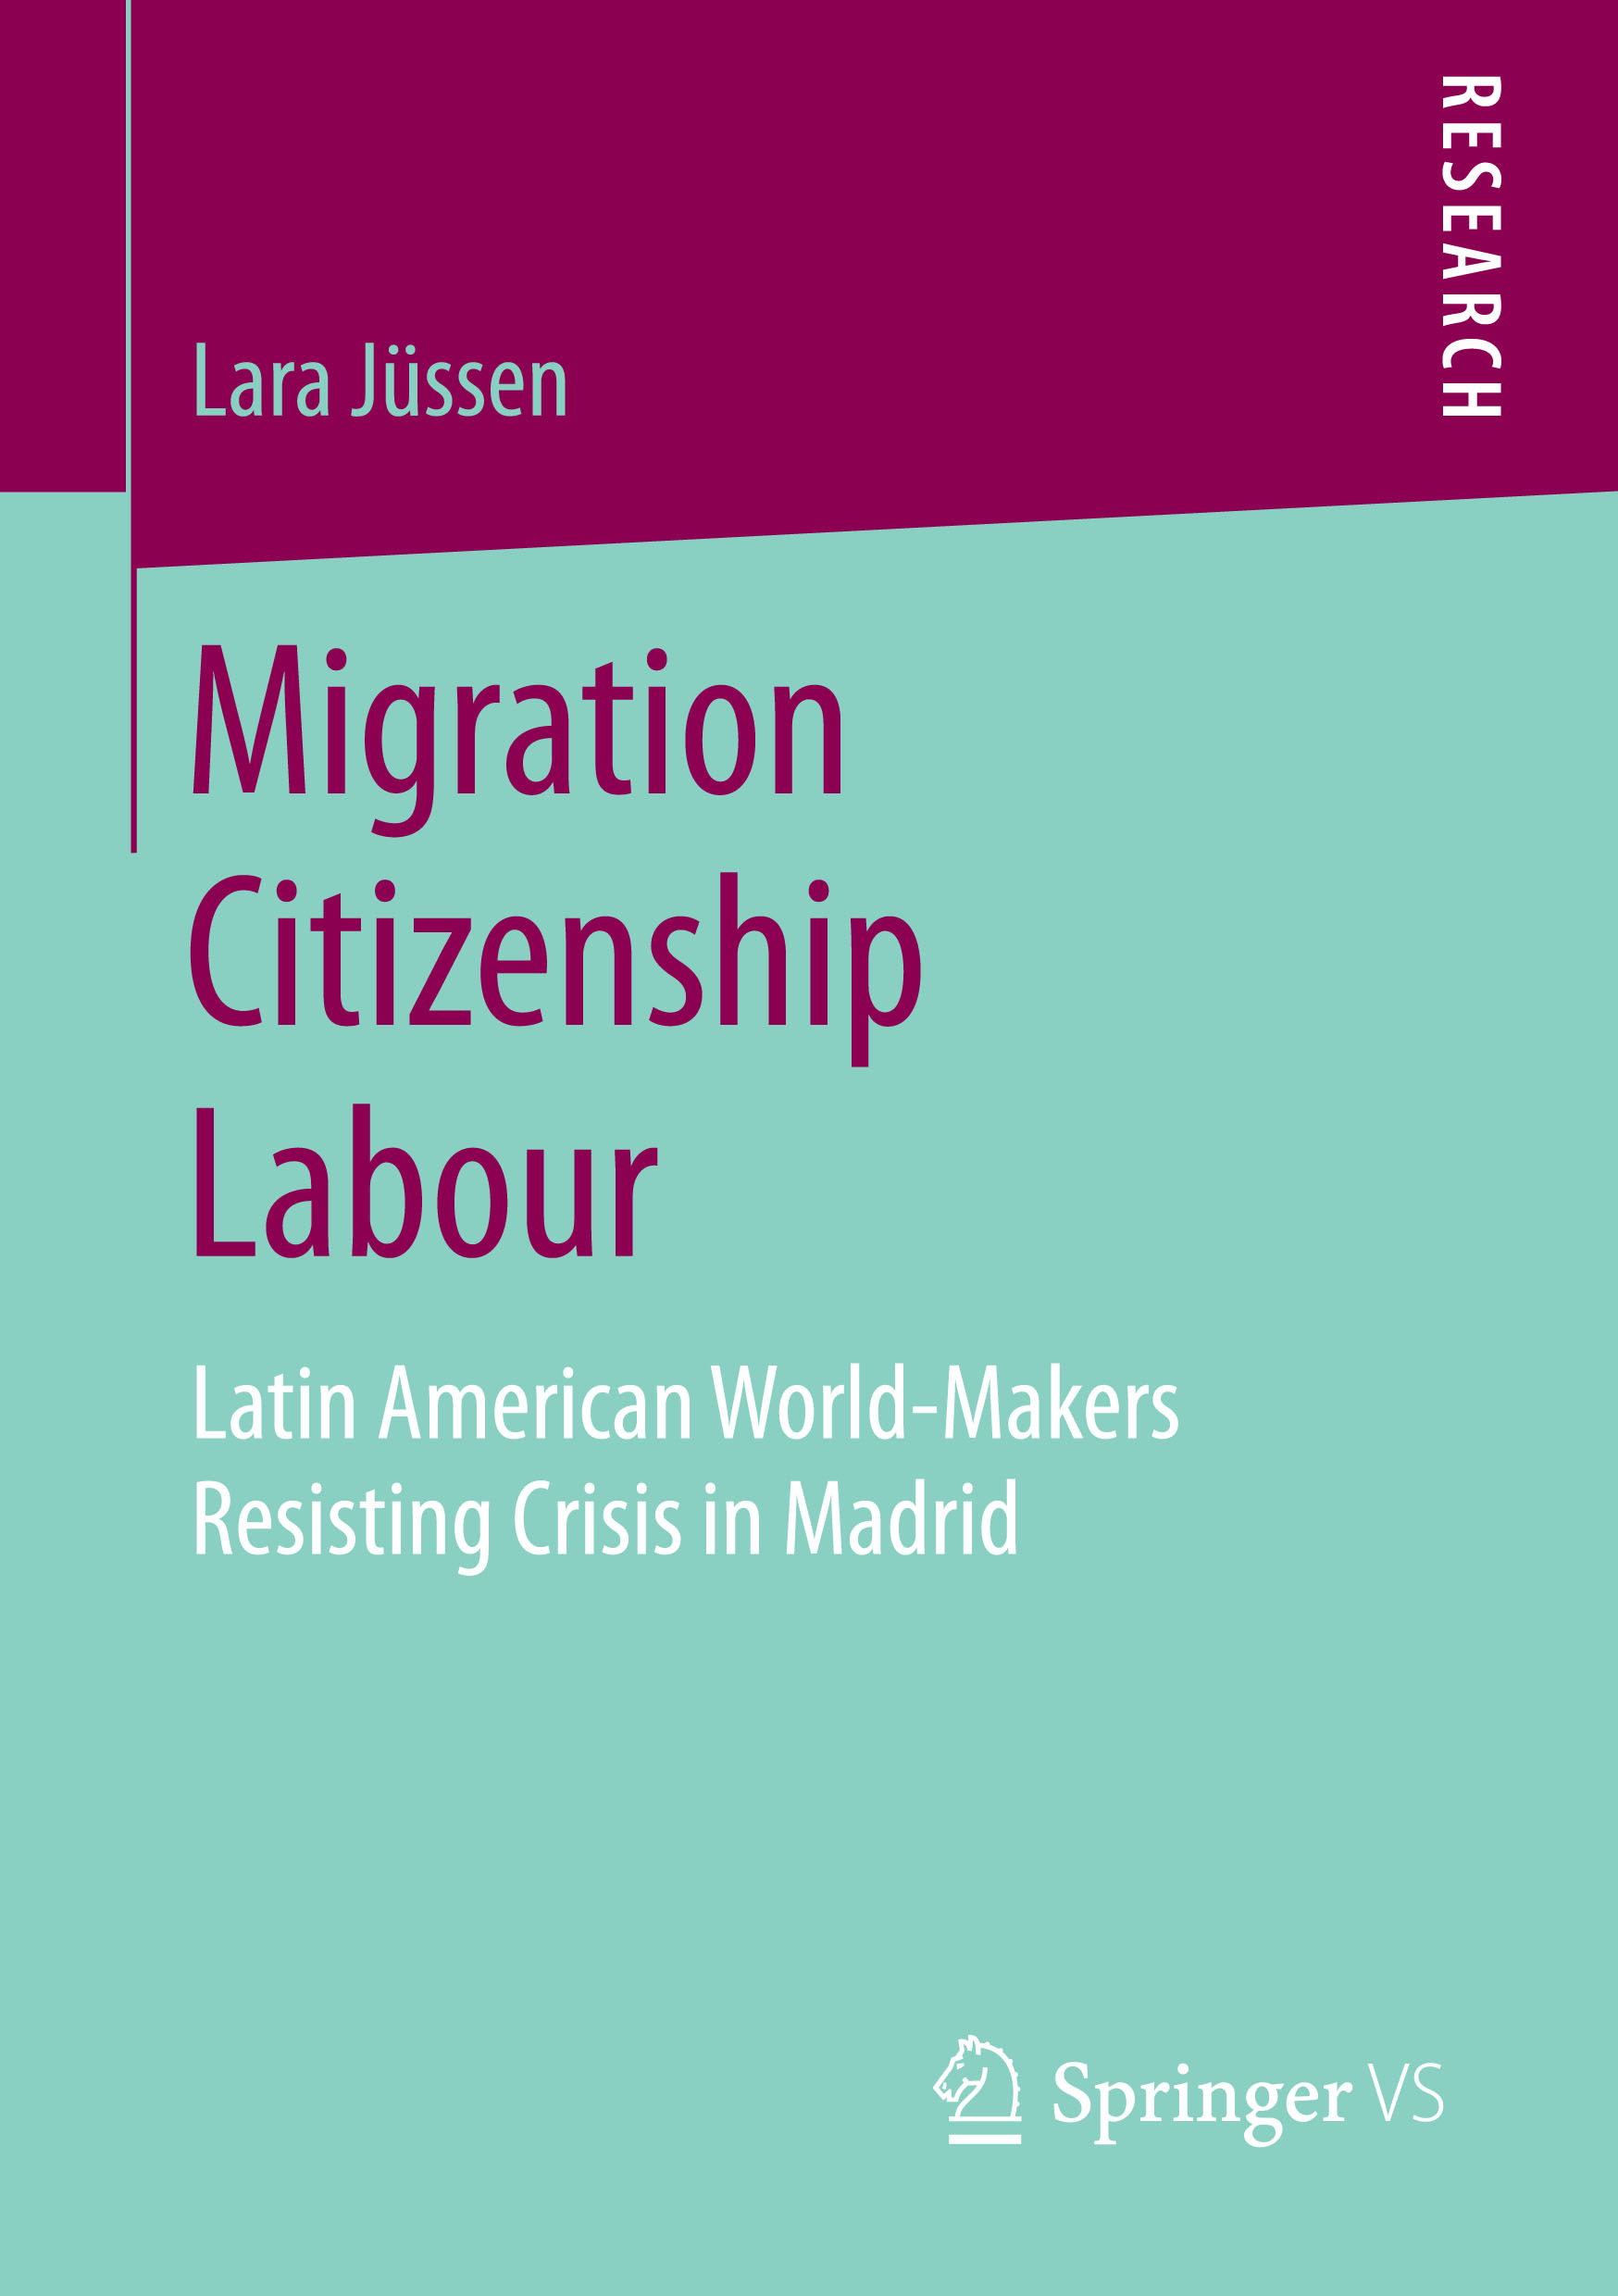 Jüssen, Lara - Migration Citizenship Labour, ebook